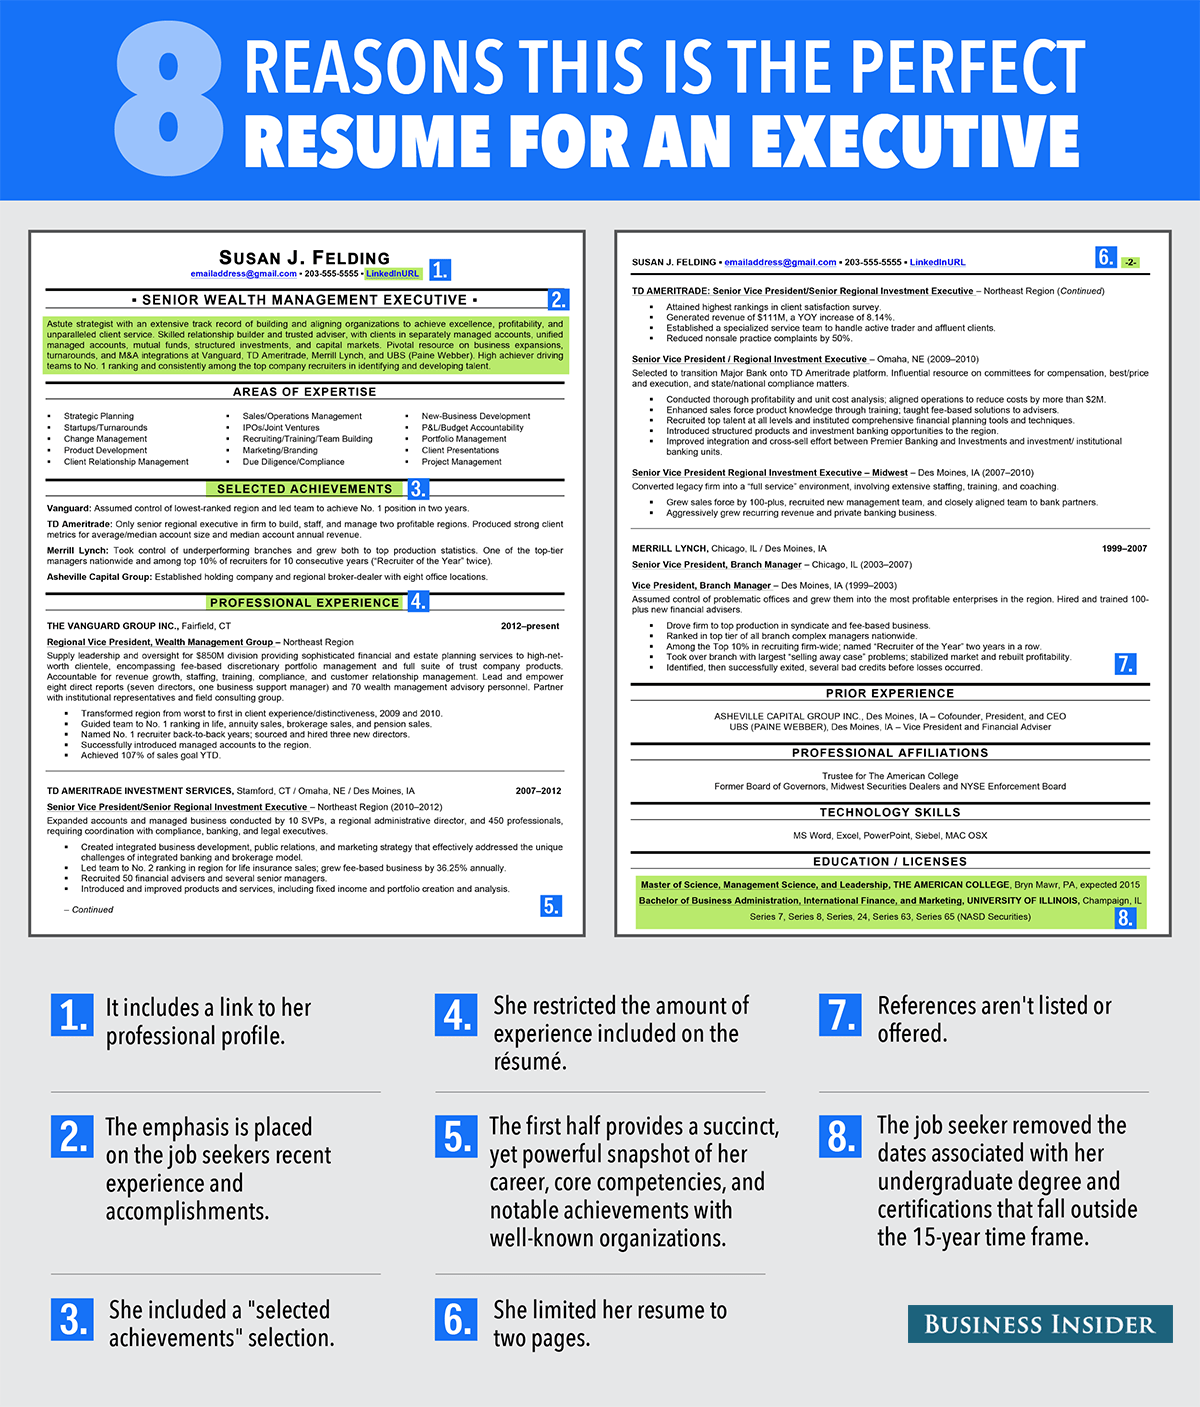 resume profile business insider